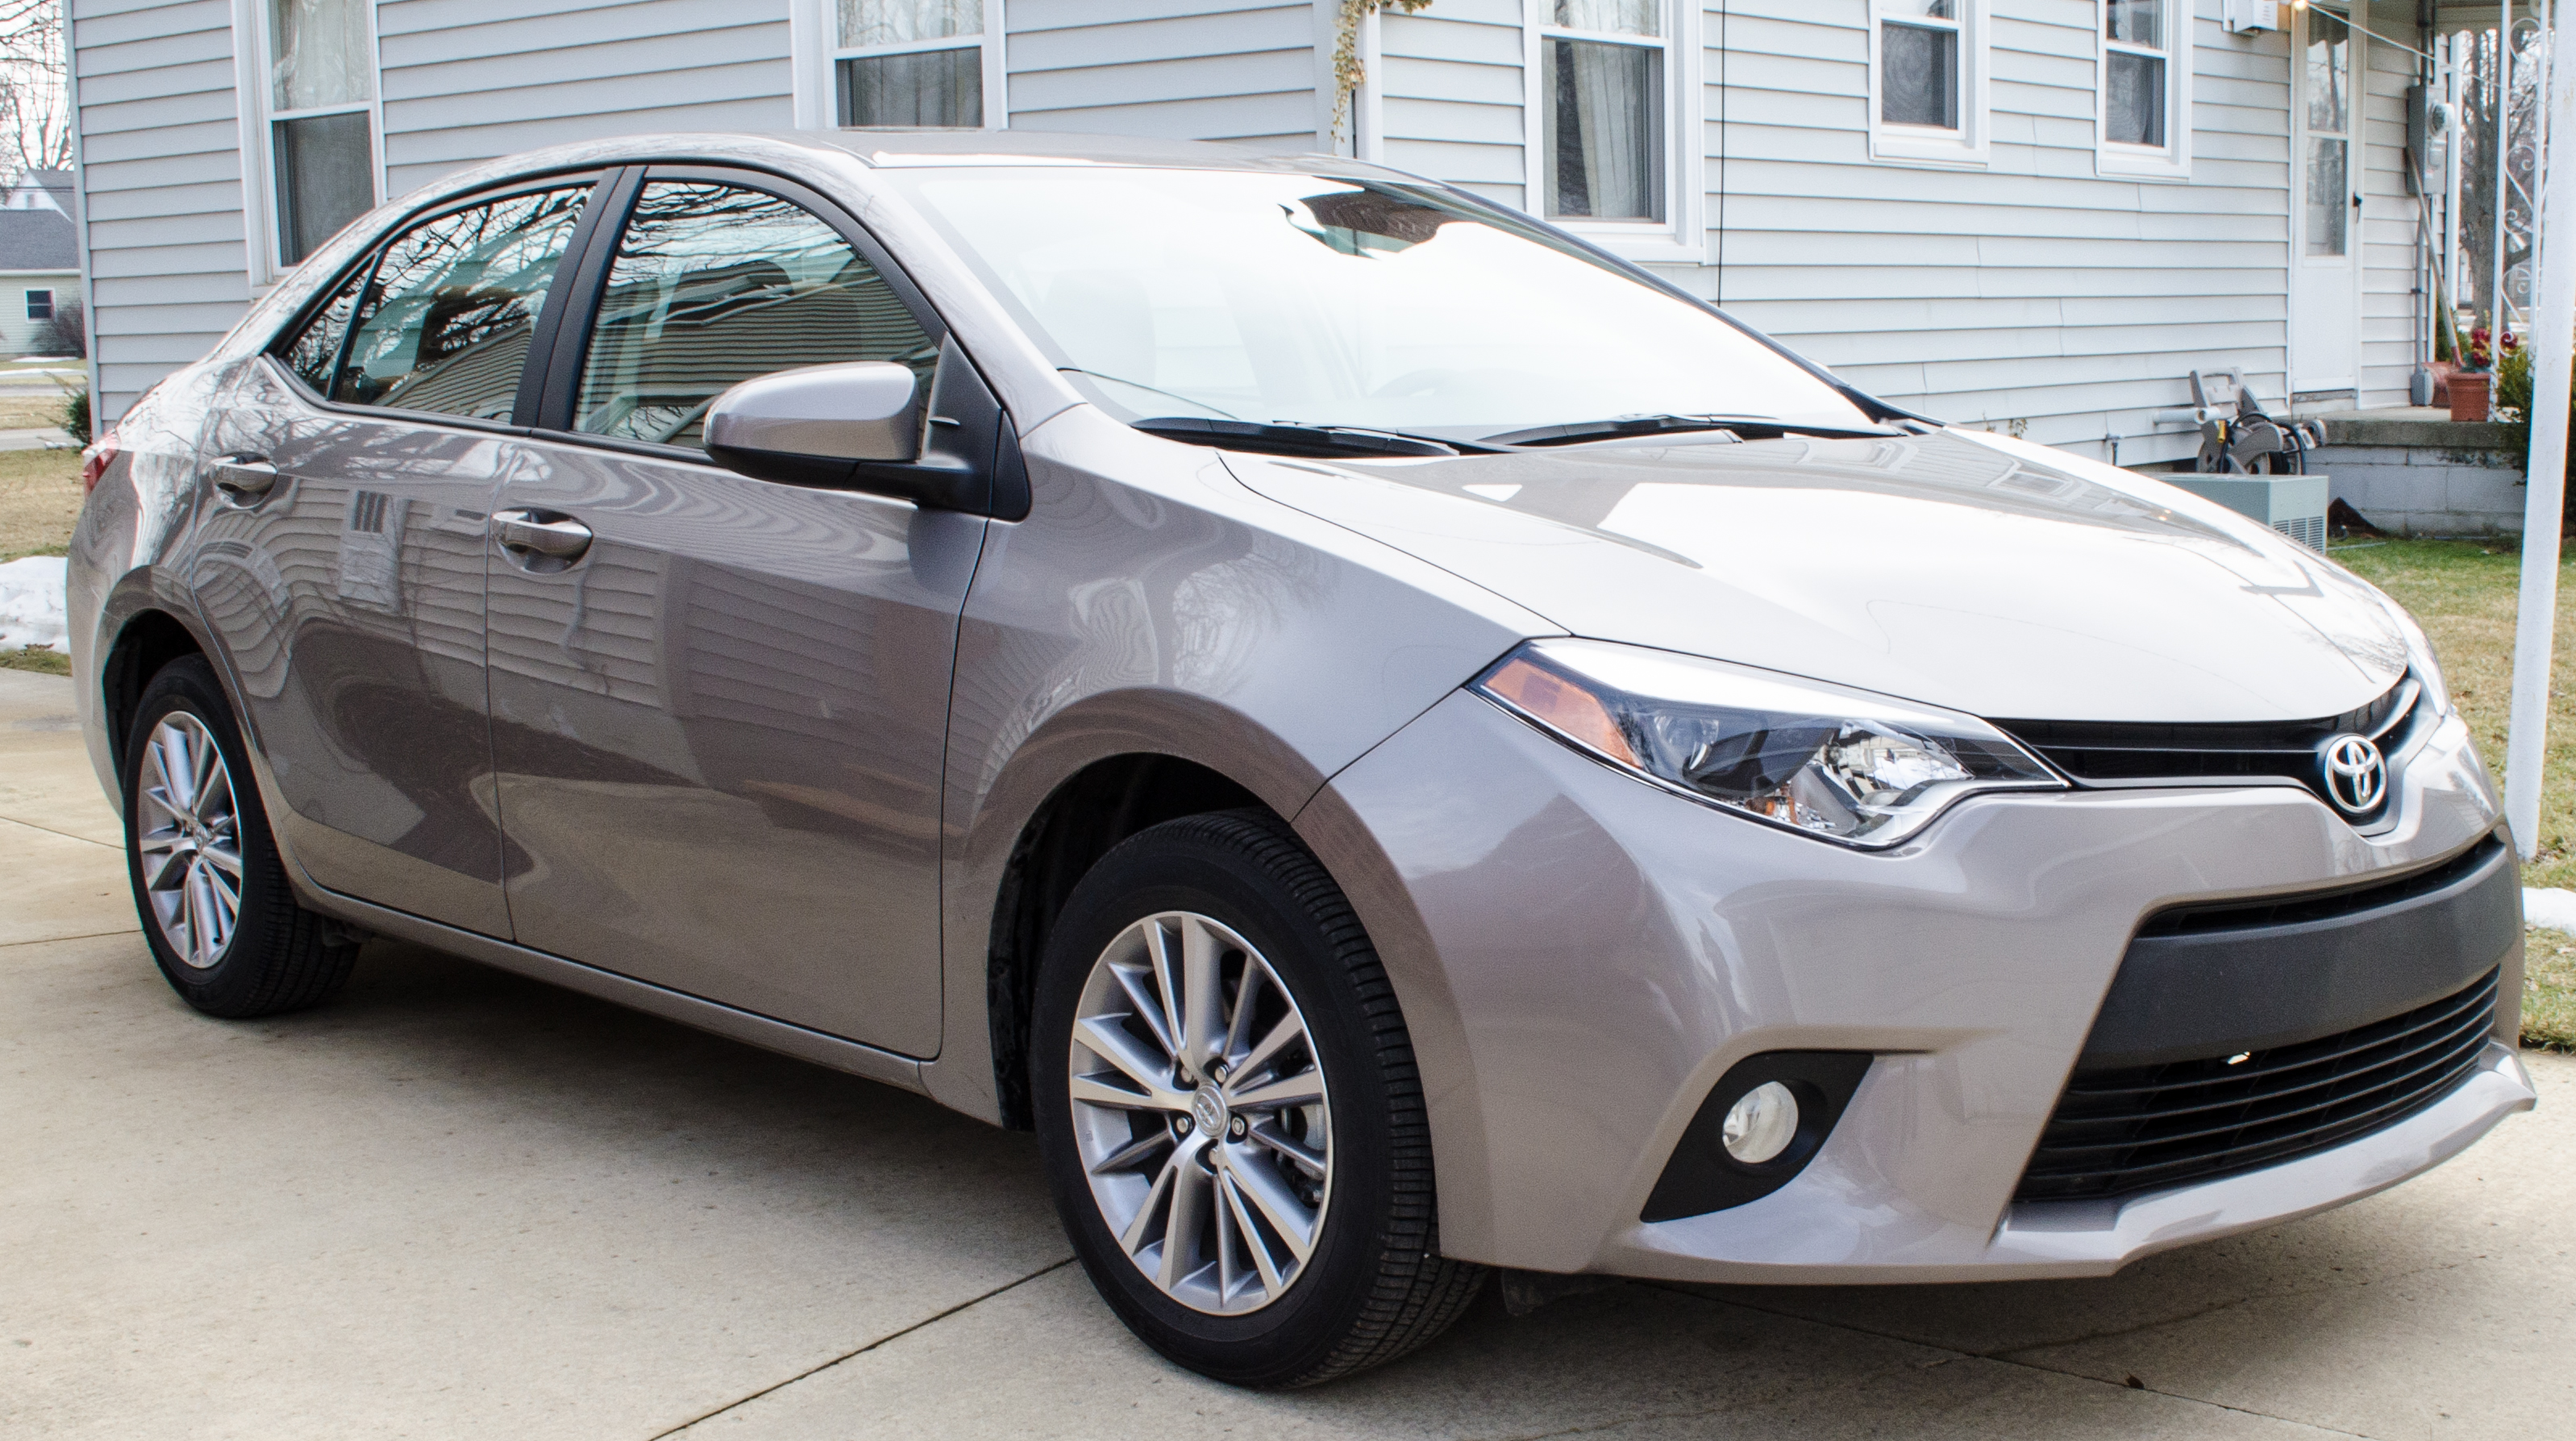 2014 toyota corolla review there\u0027s a reason this car is a top